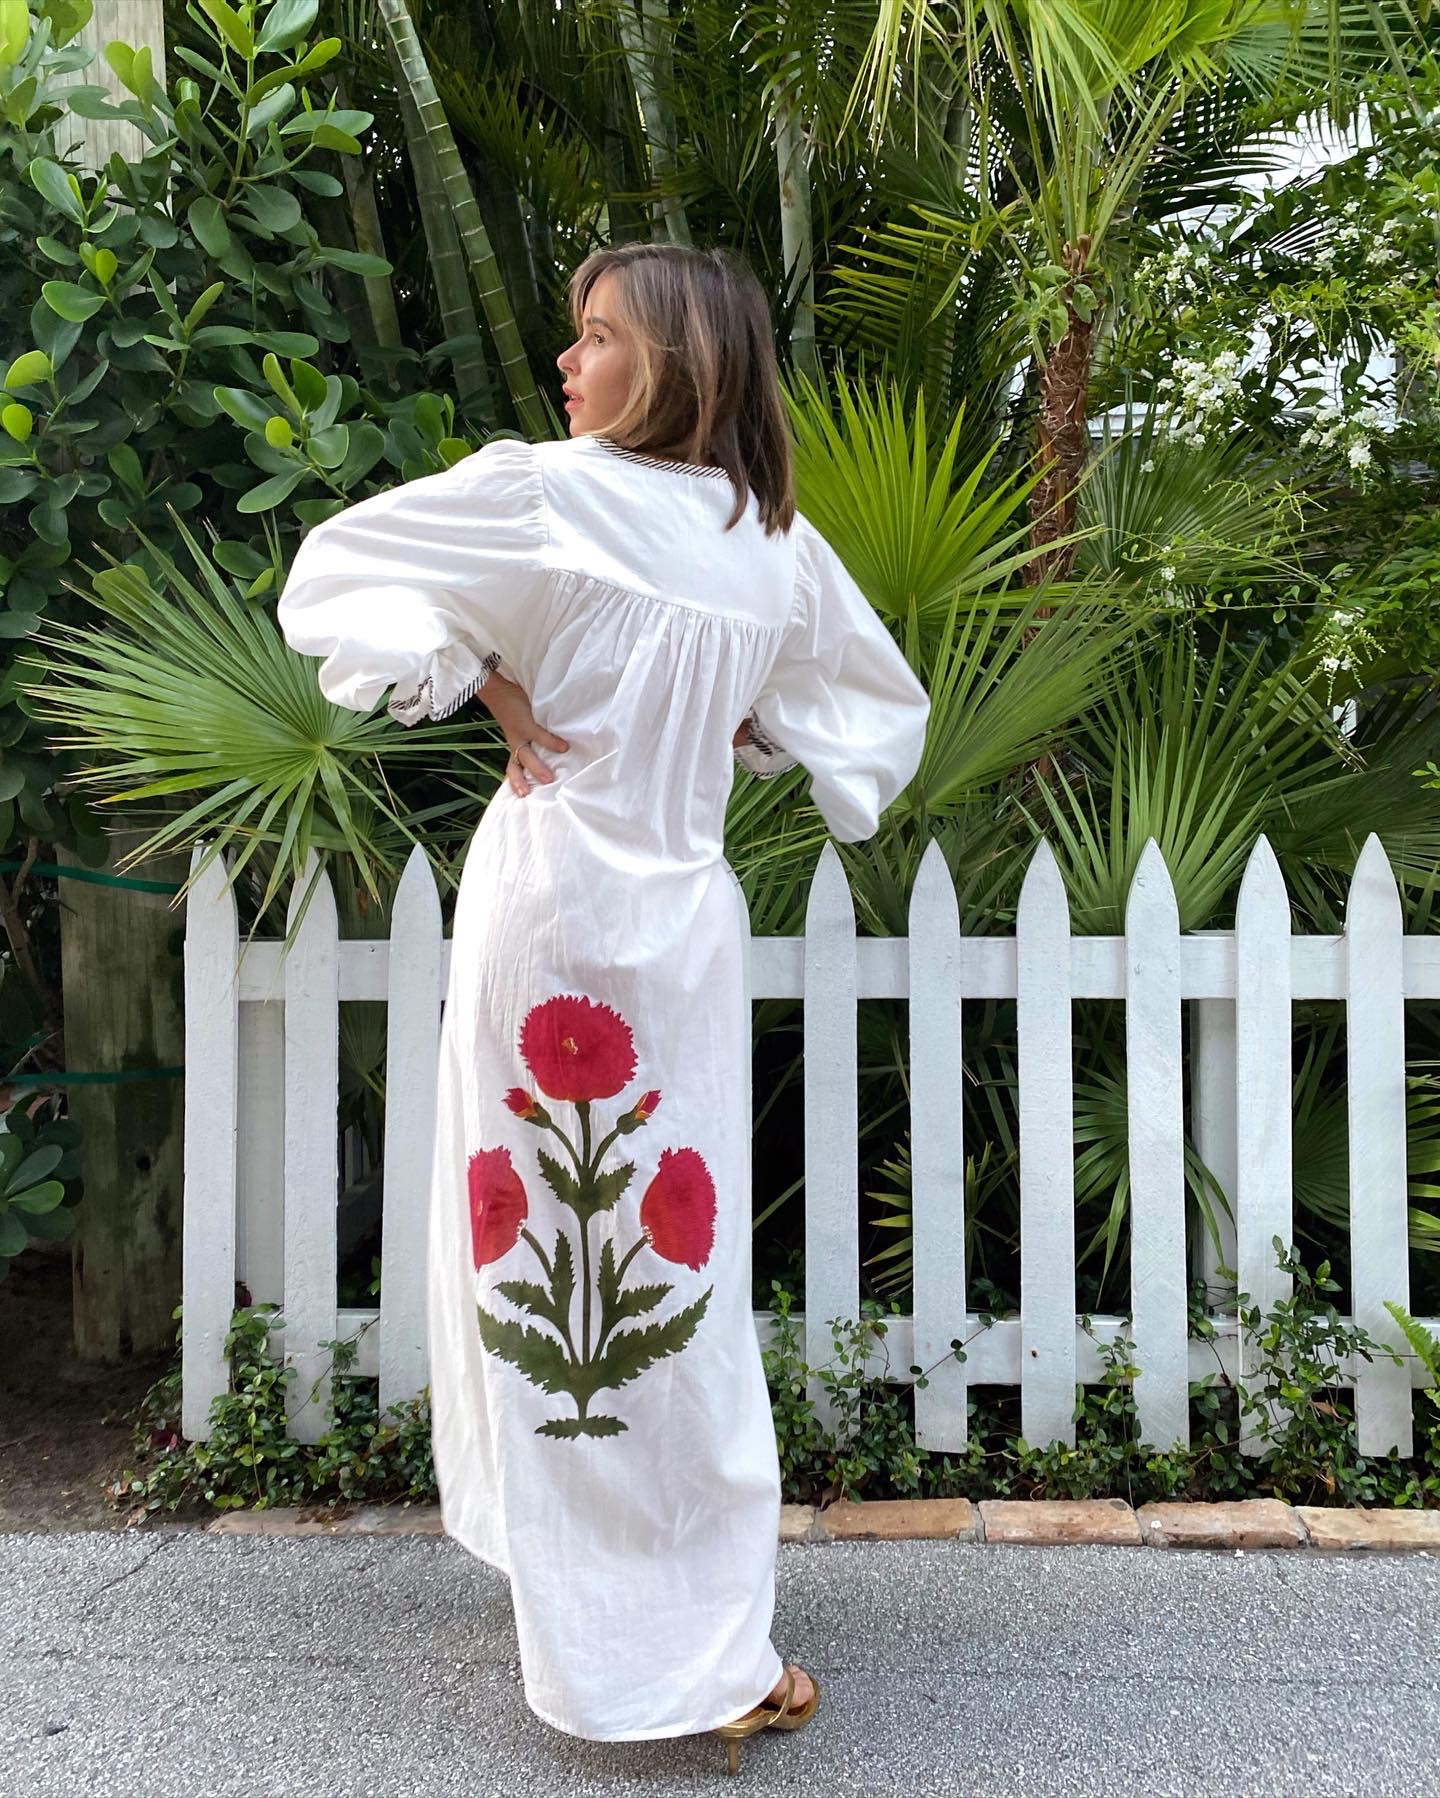 Fashion Blogger Stephanie Hill wears #ootd featuring Tallulah Rose poppy kaftan dress on The Style Bungalow